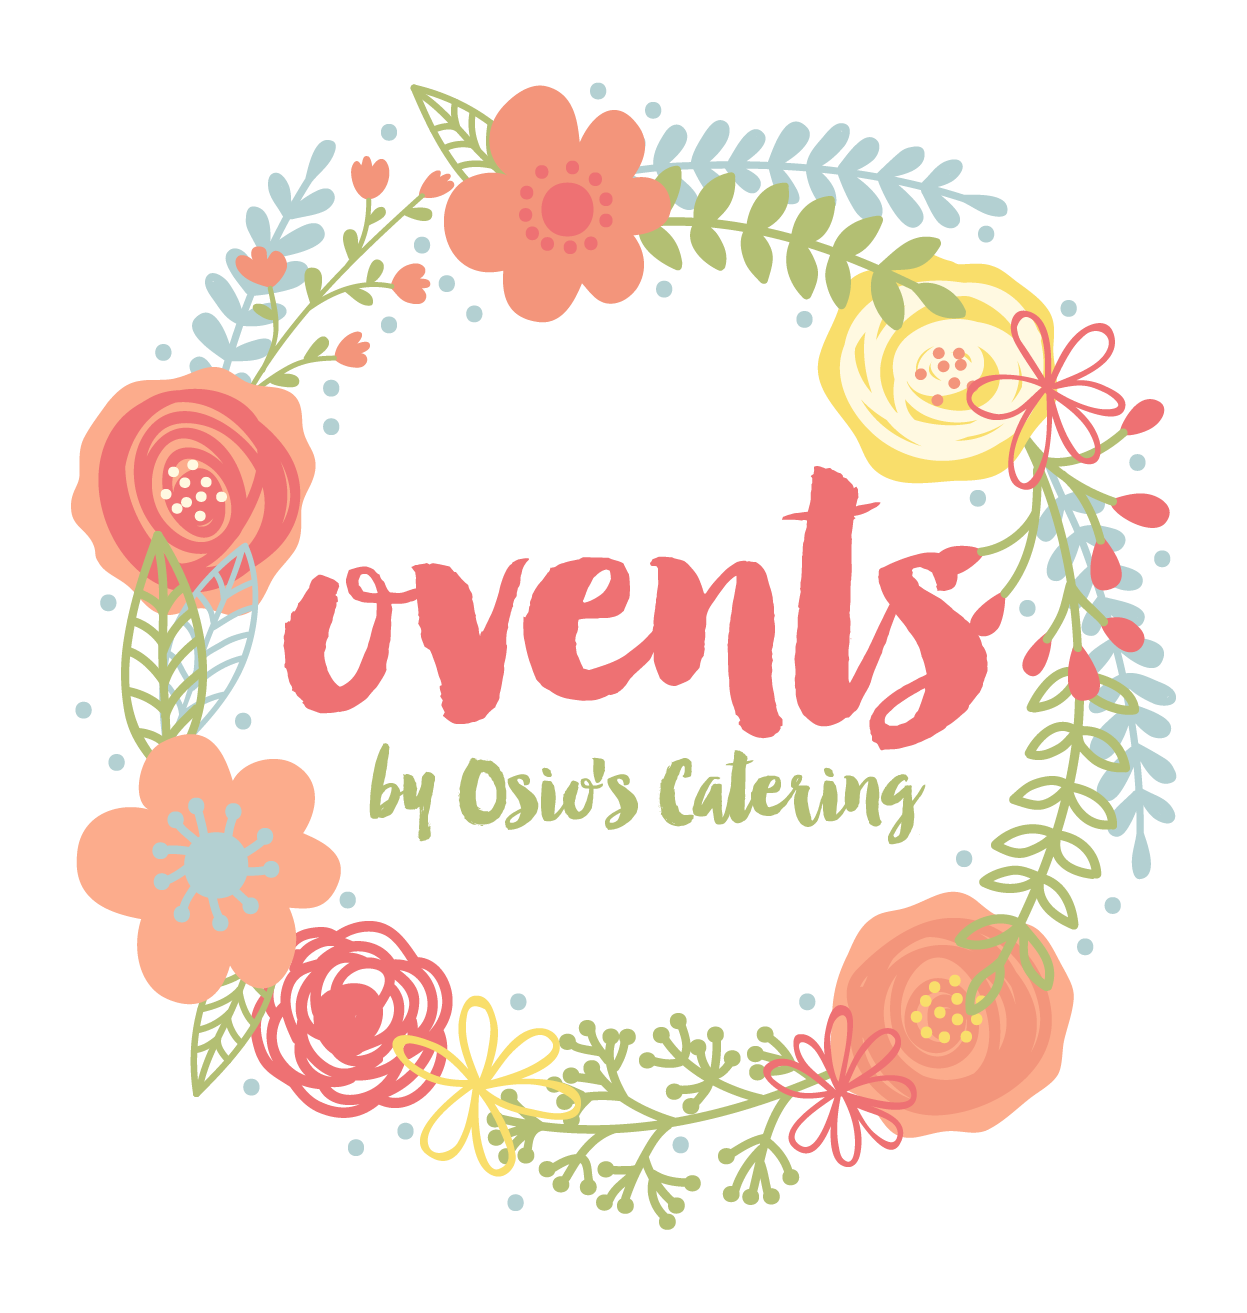 Ovents by Osio's Catering Showroom, Gian Plaza, National Highway, Tunasan, Muntinlupa, 1773, Philippines